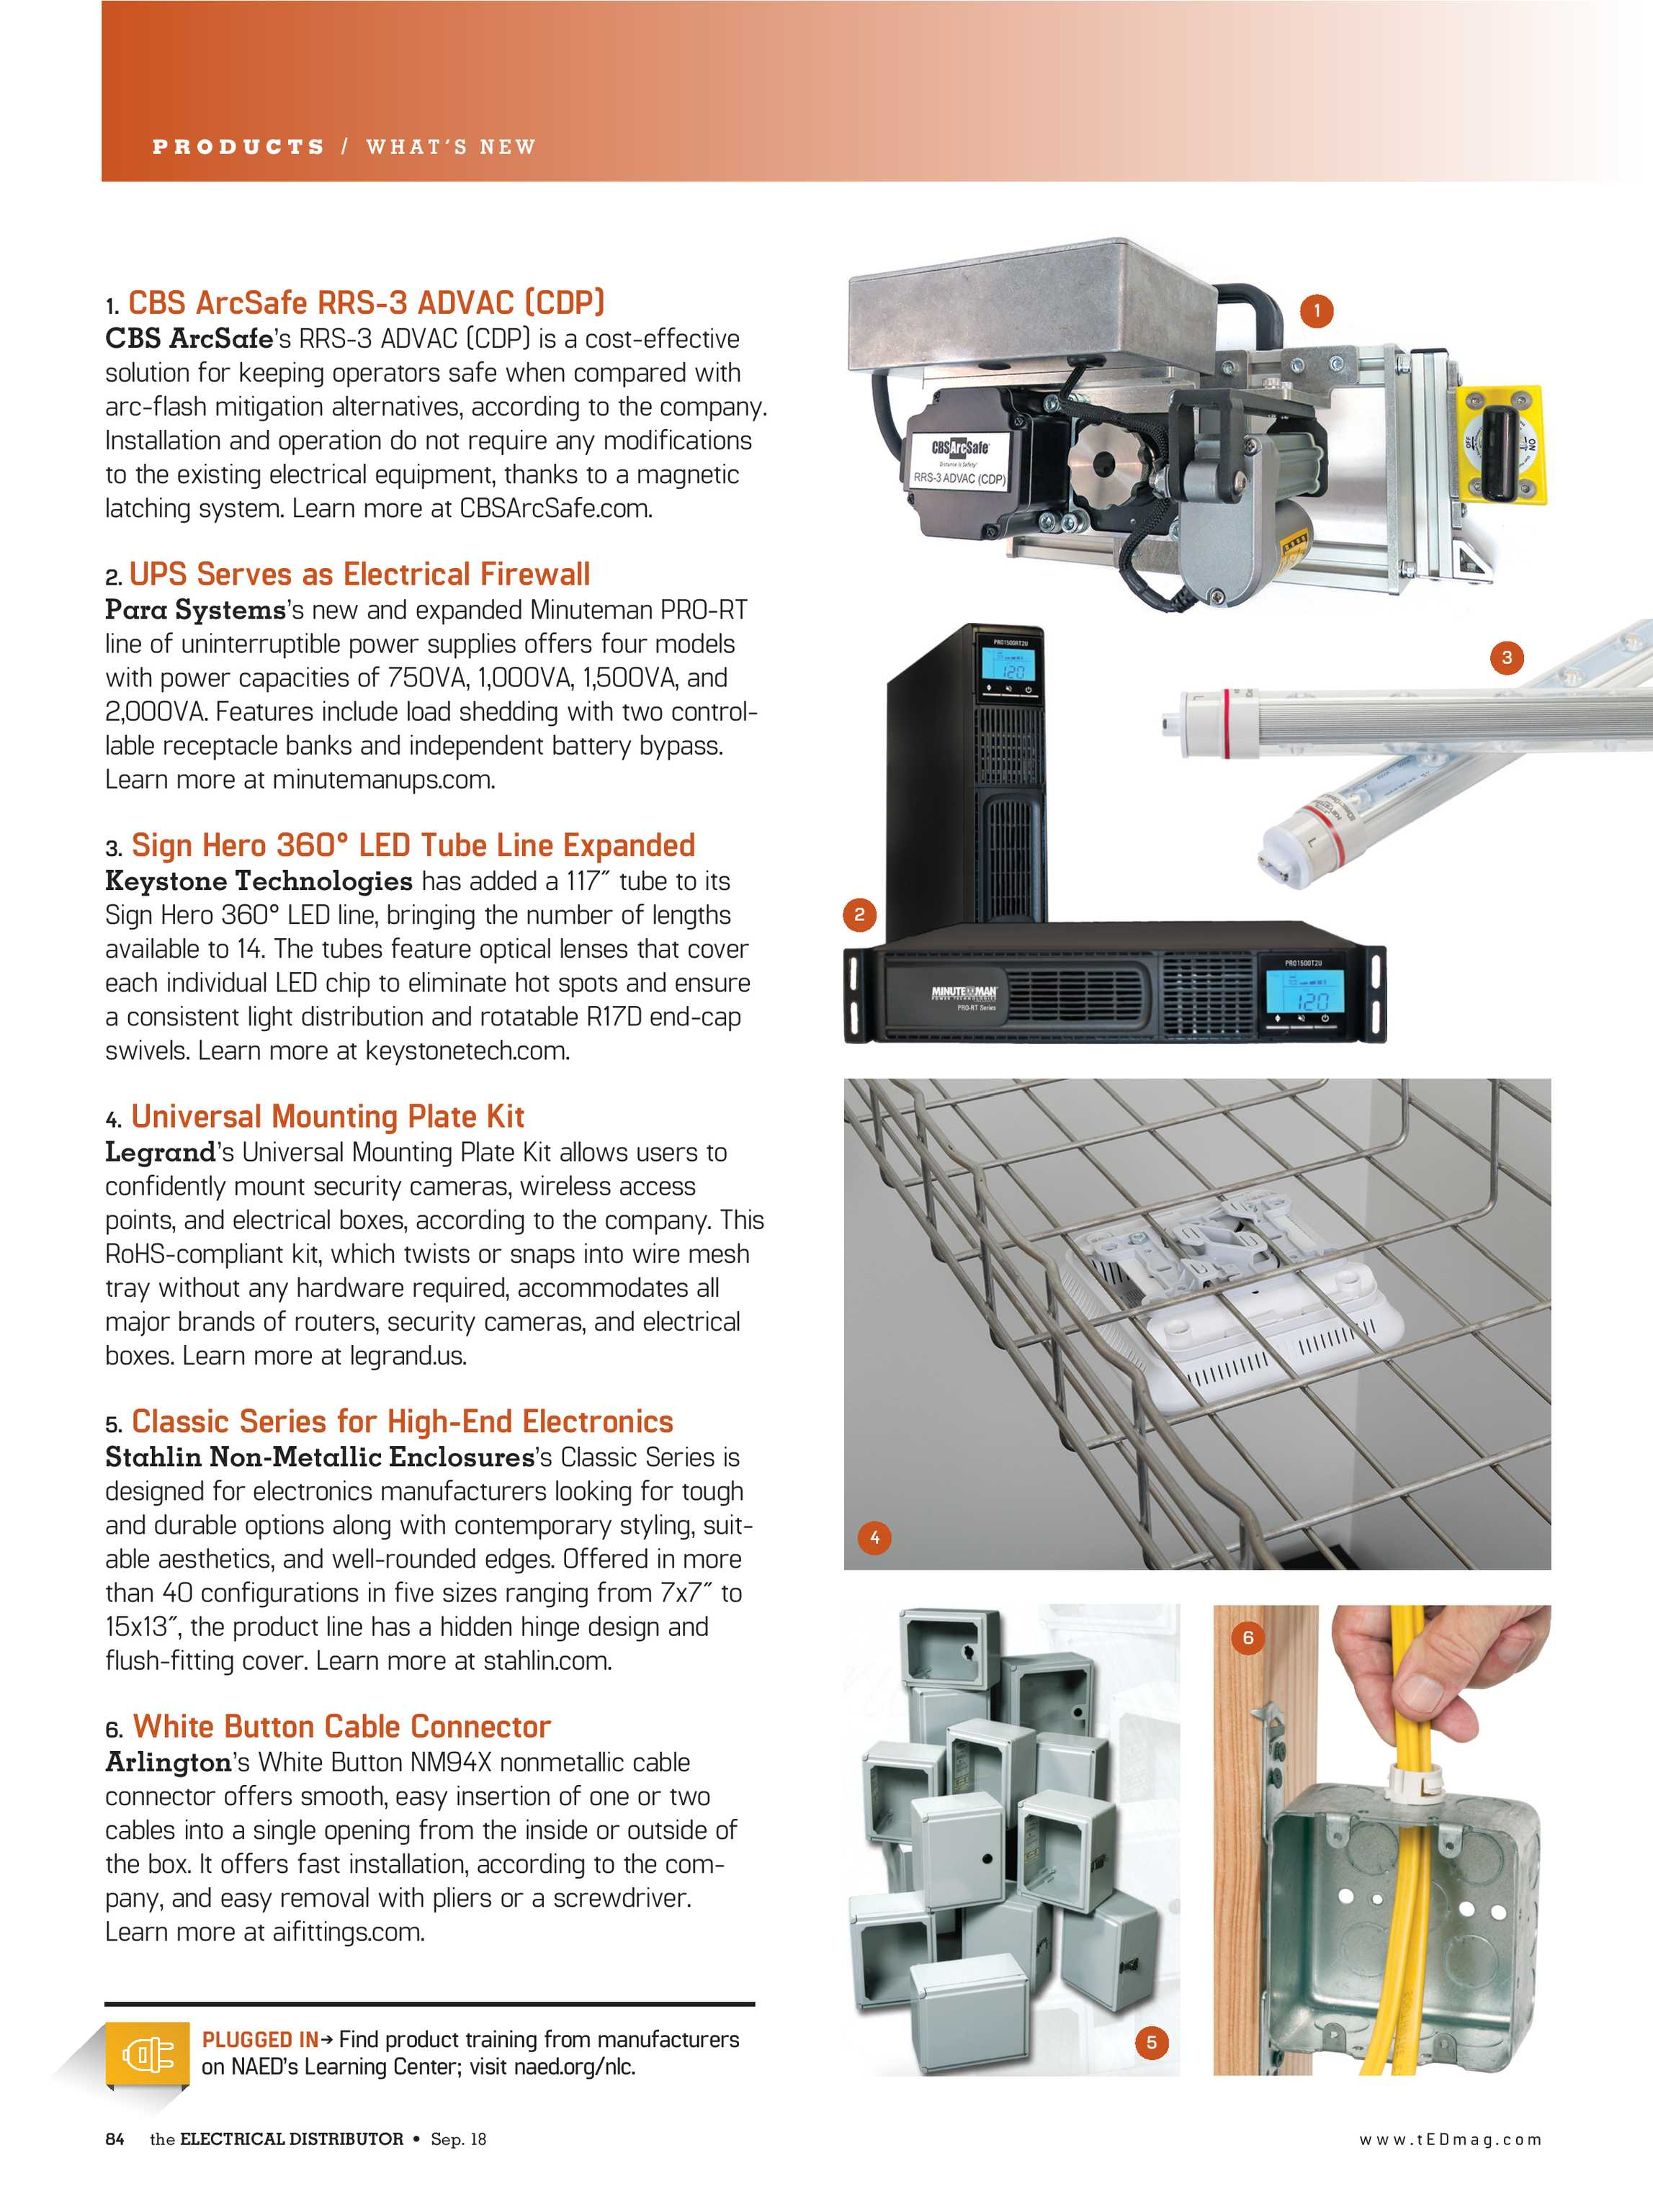 Ted Magazine September 2018 Page 84 Home Wiring In Series Or Parallel Along With Battery Bank